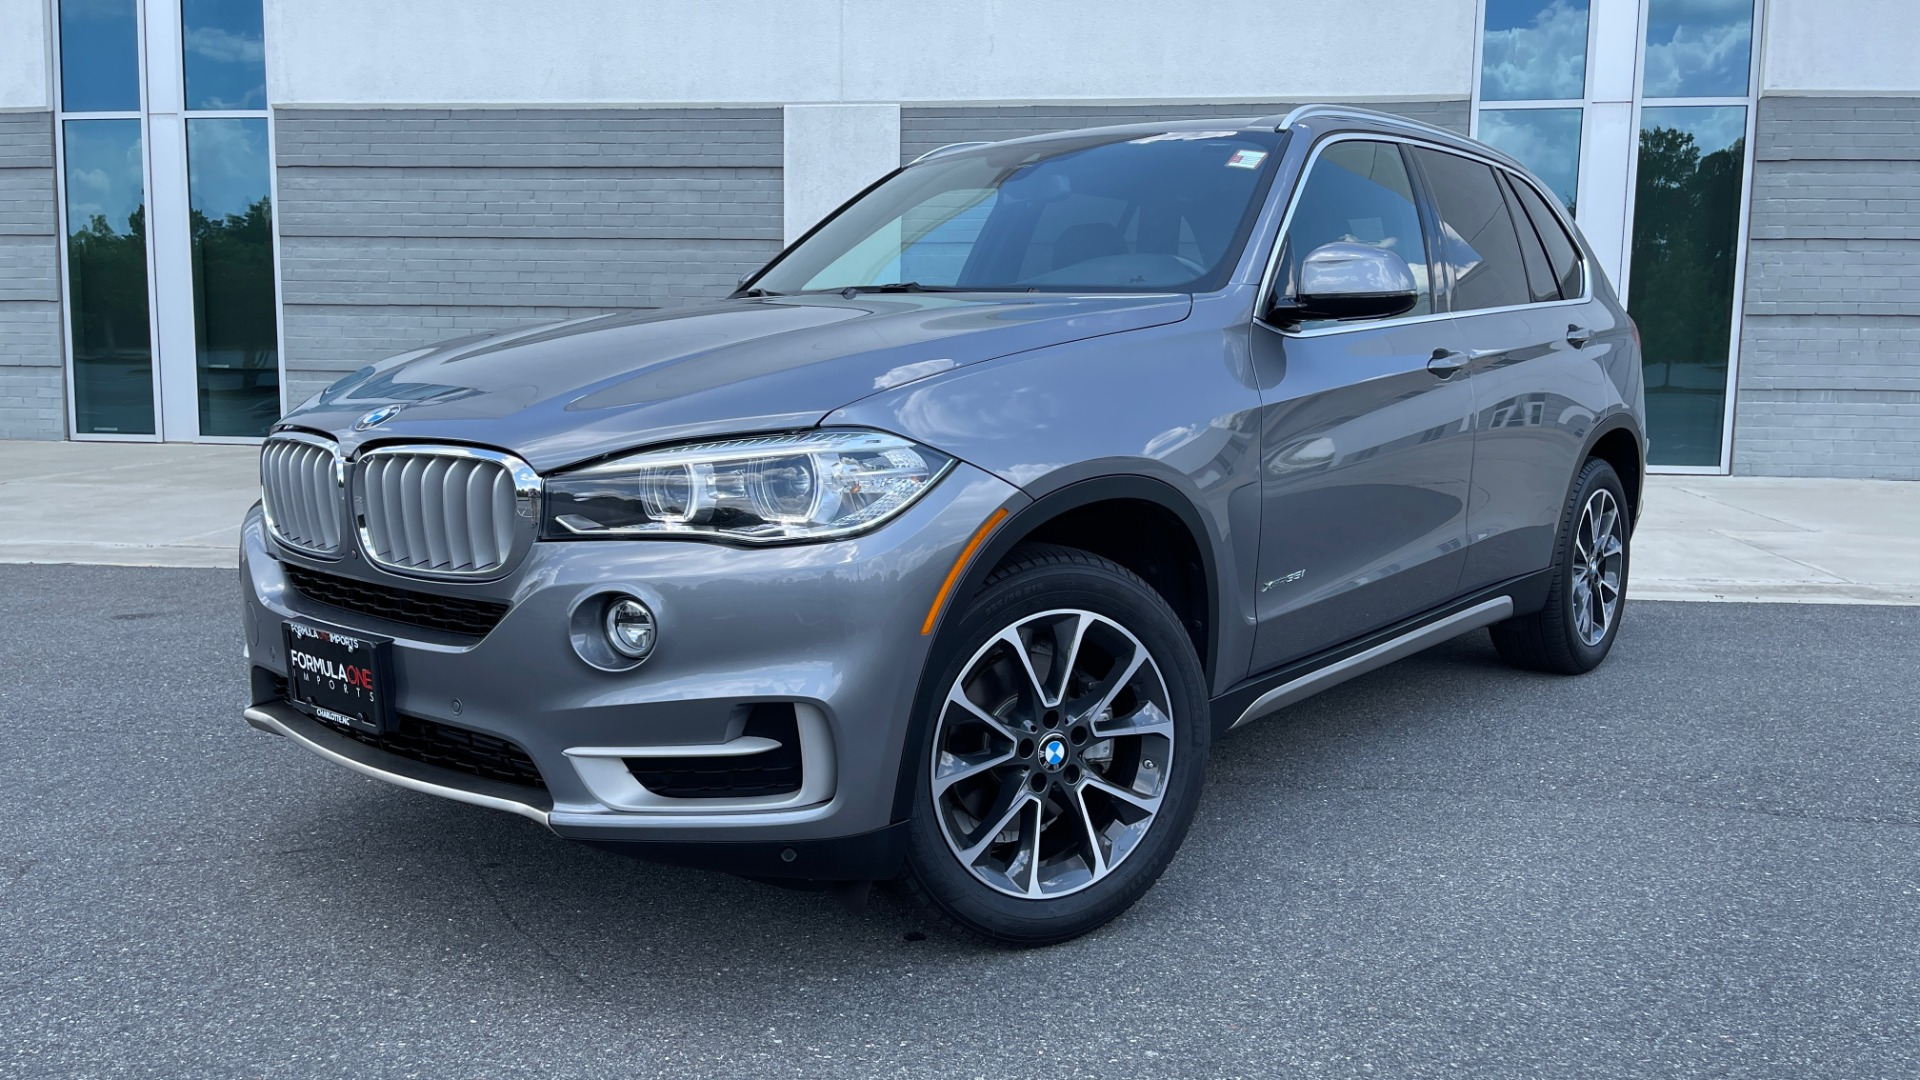 Used 2018 BMW X5 XDRIVE35I PREMIUM / DRVR ASST / WIRELESS CHARGING / CAMERAS for sale $46,995 at Formula Imports in Charlotte NC 28227 1